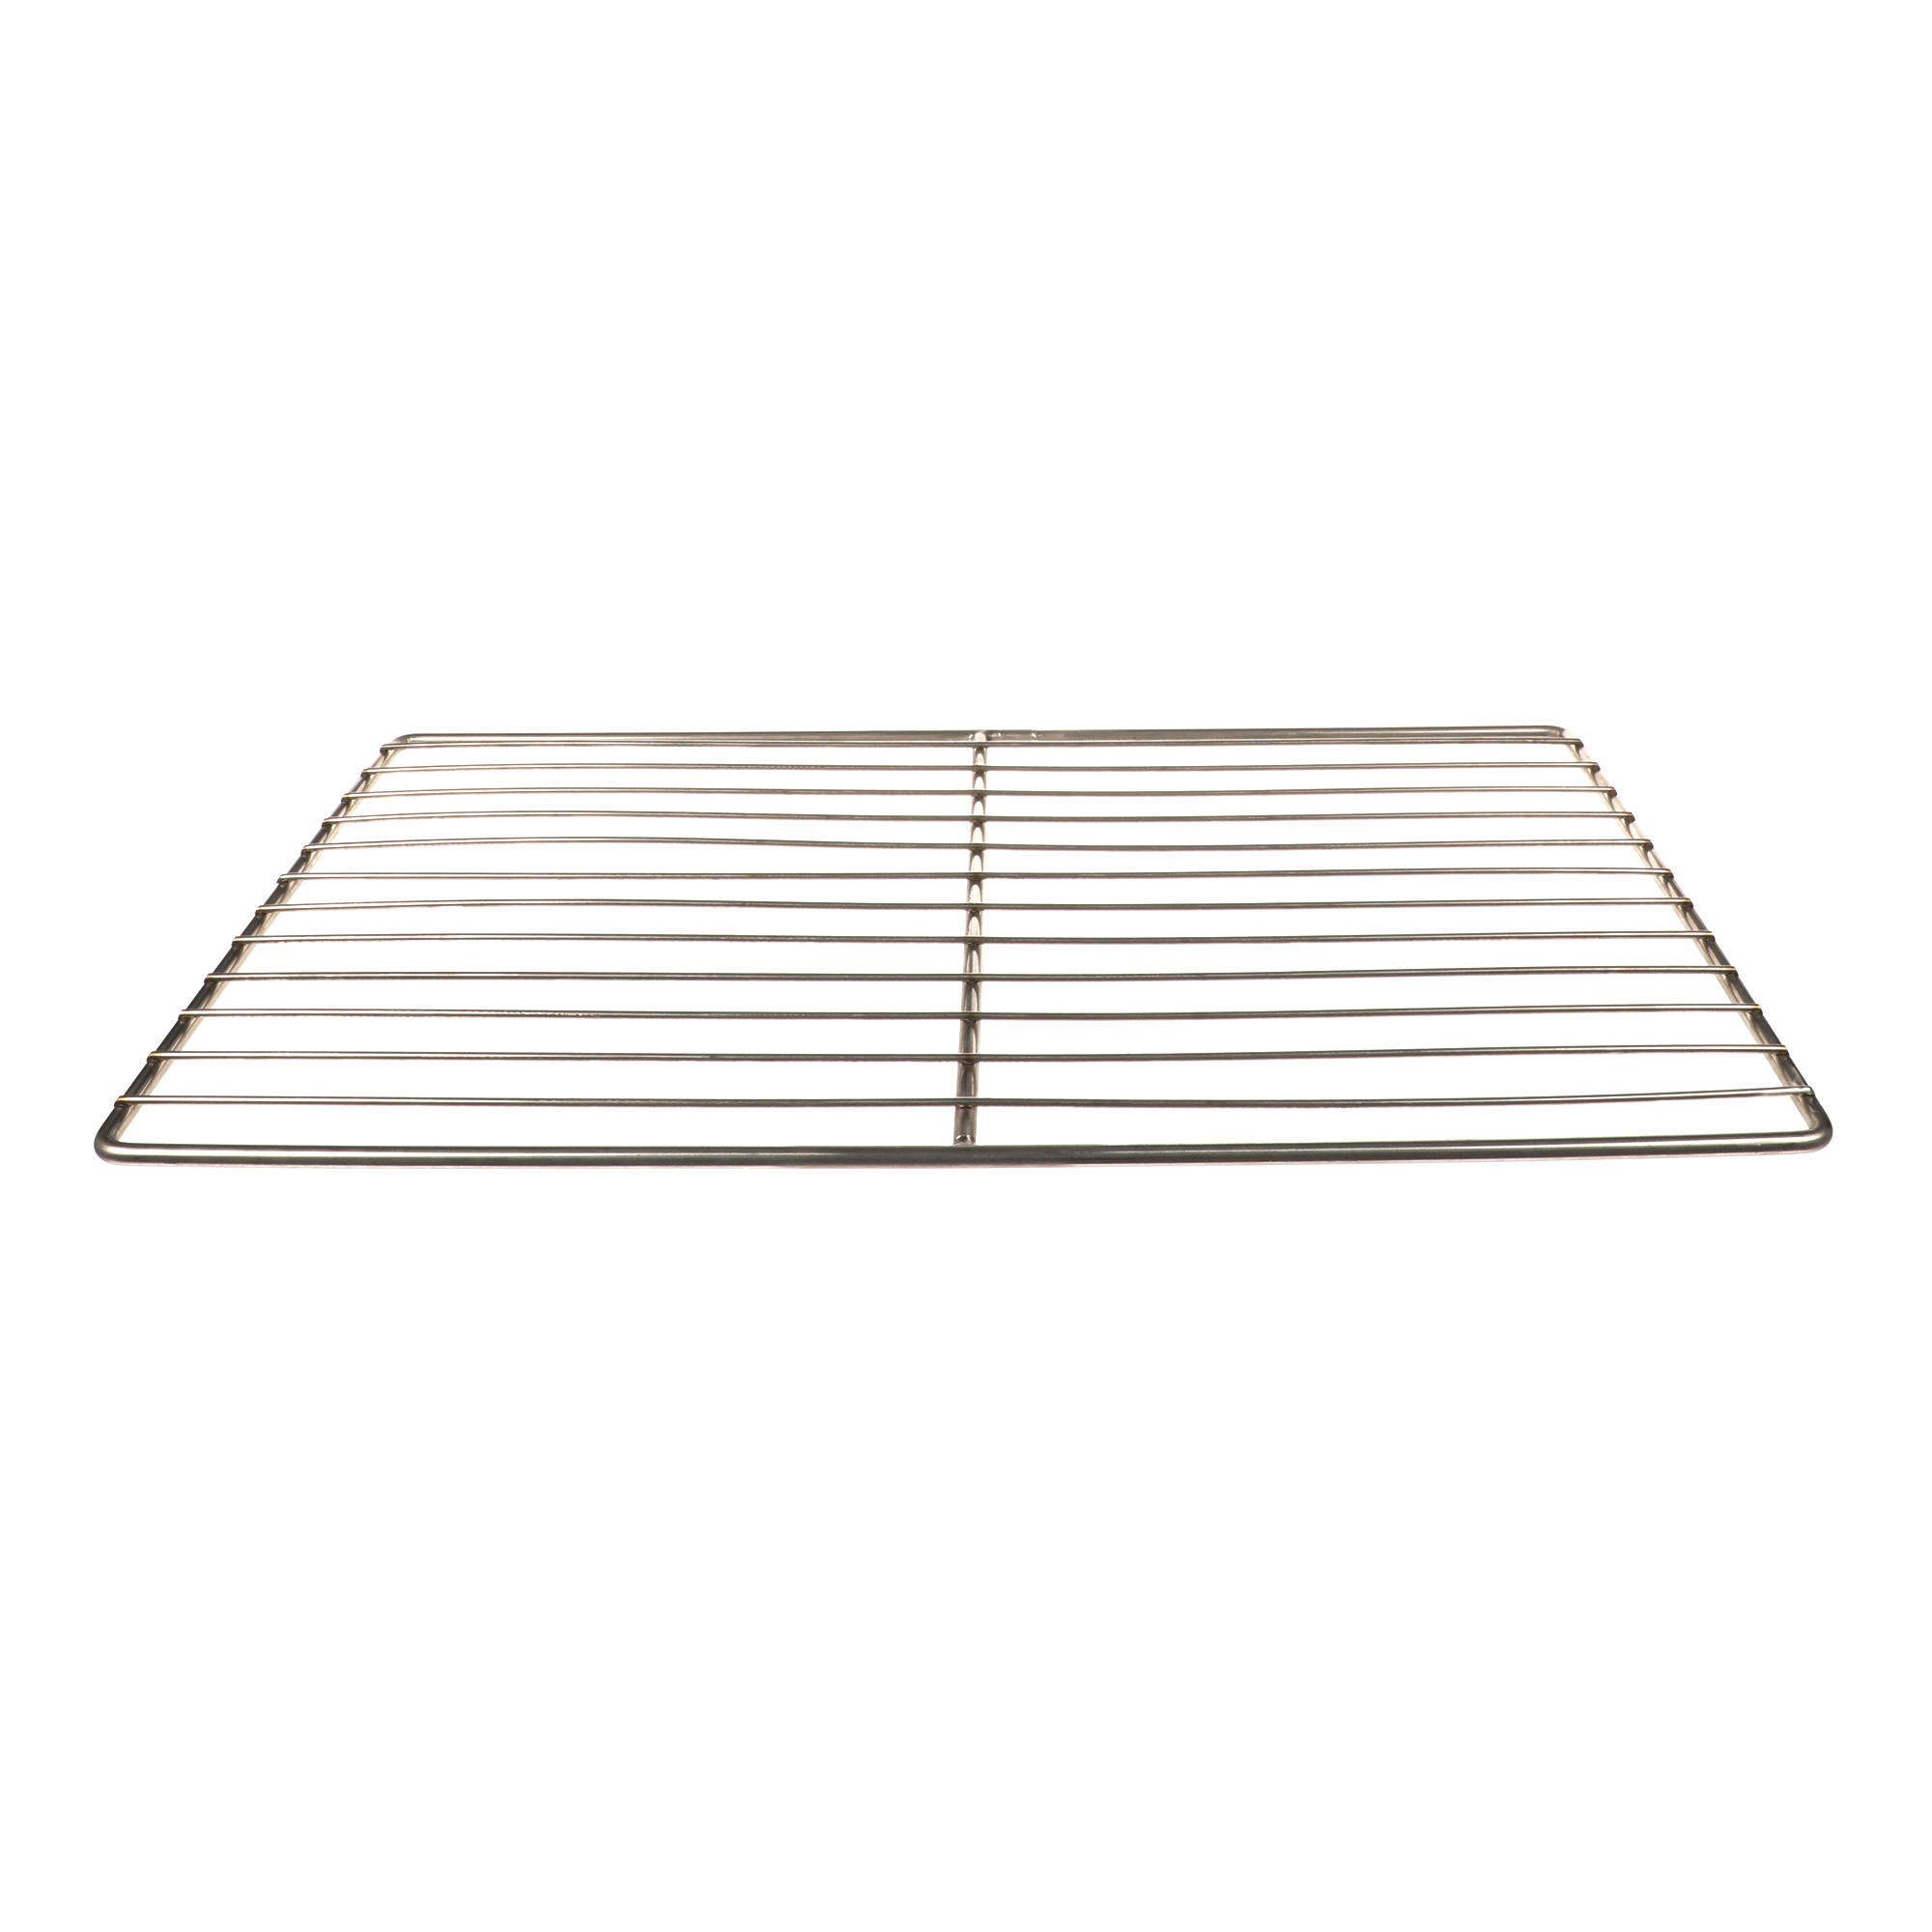 Shelf 1/1 530x325mm Stainless Steel 12 Wires